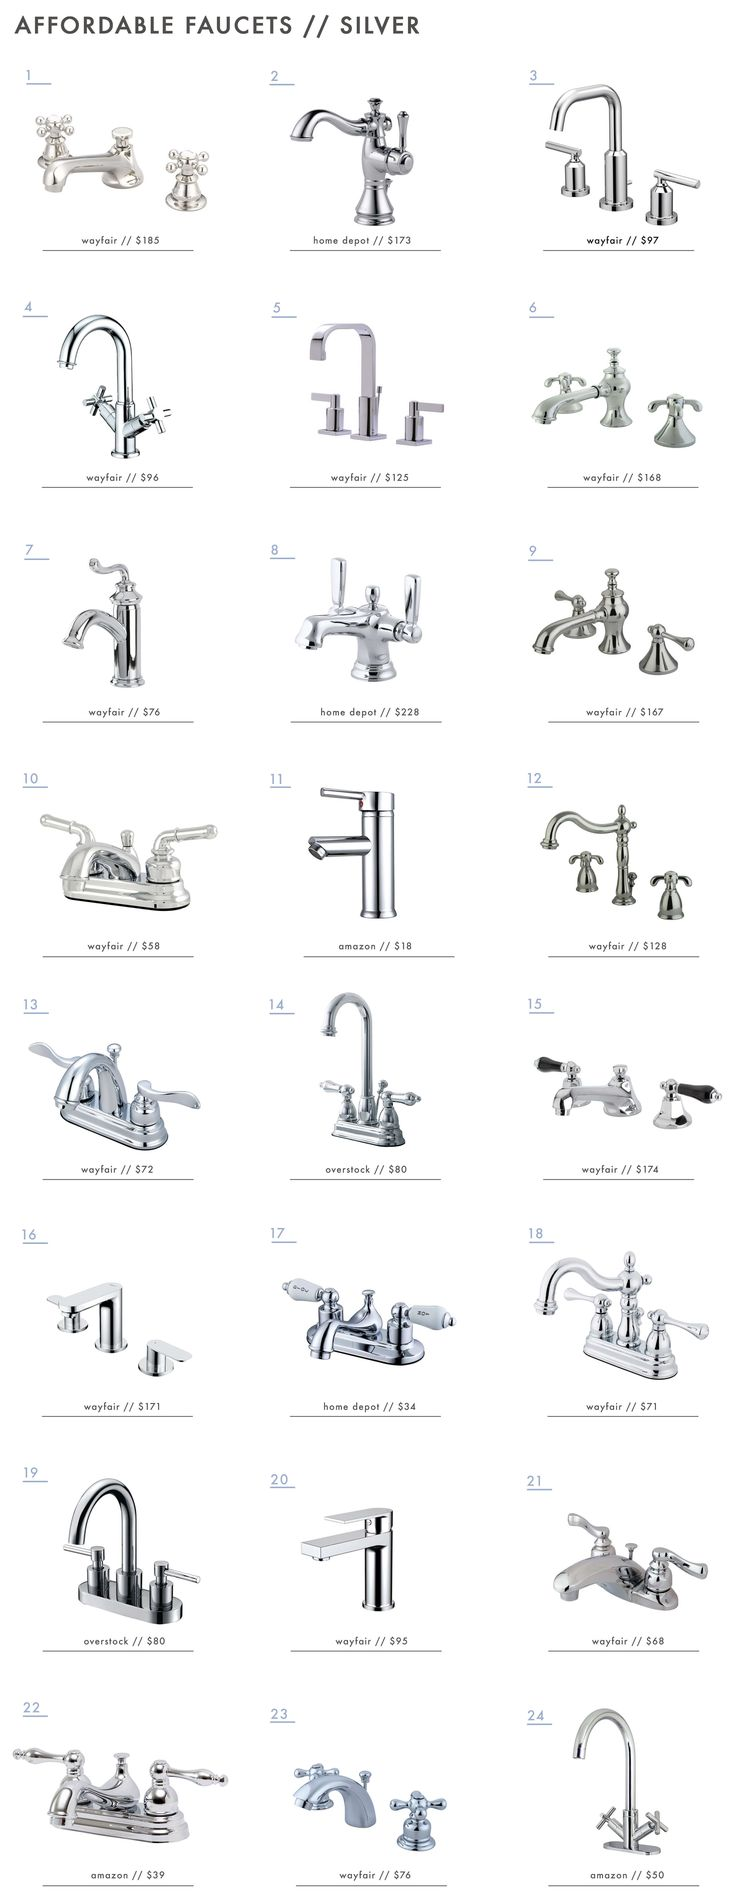 24 Affordable Silver Bathroom Faucets